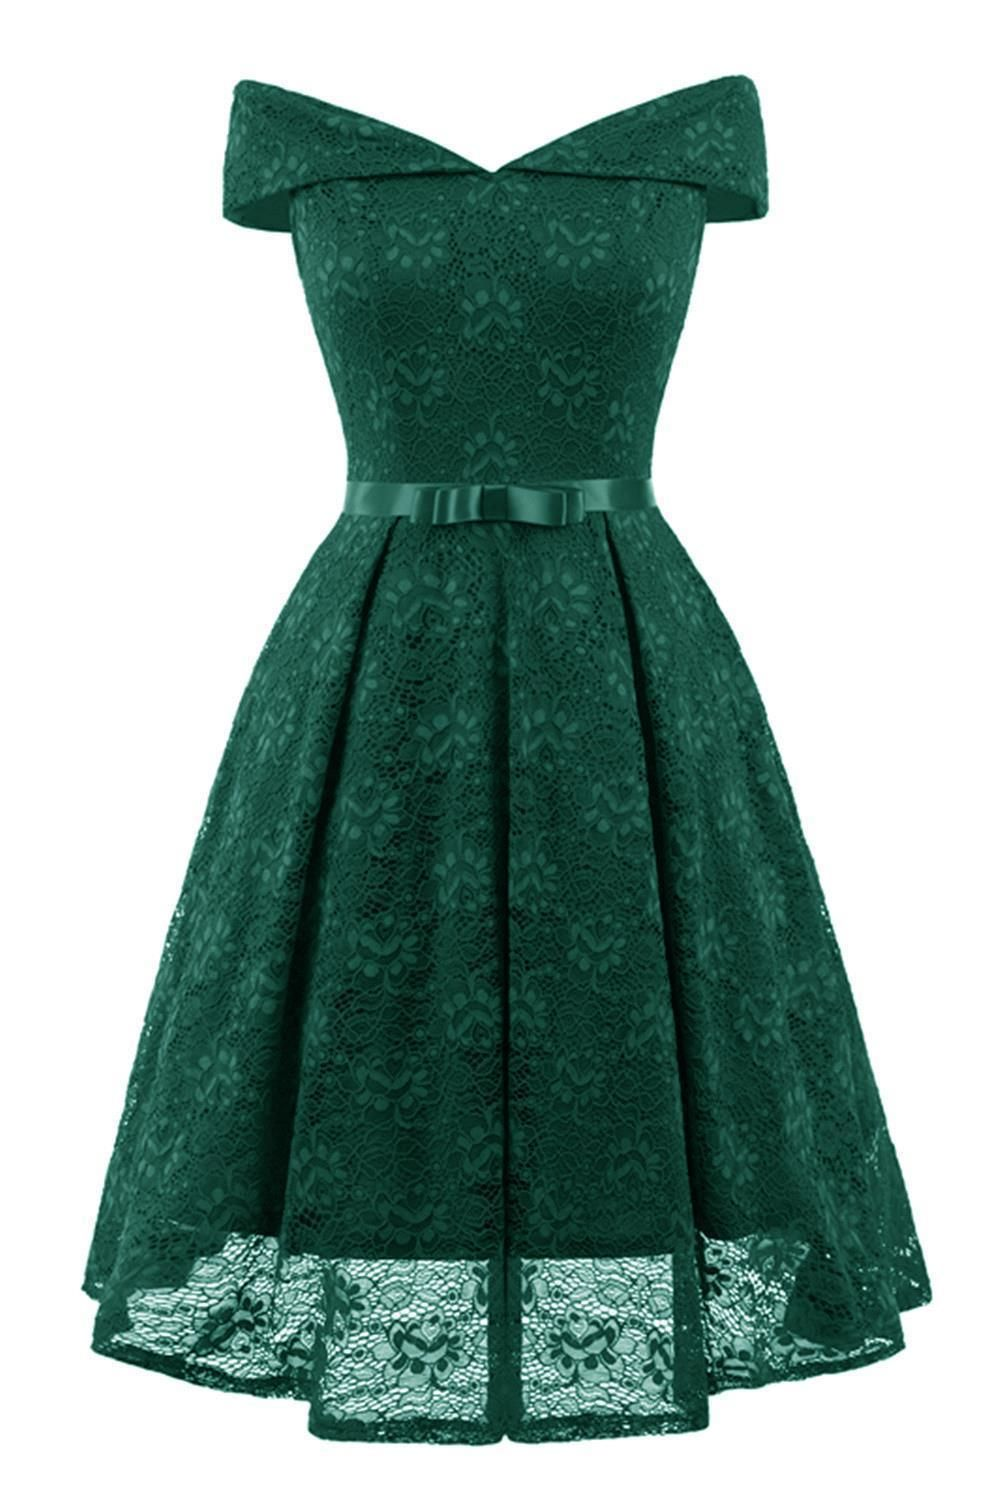 28afc6264215 Green Lace Off Shoulder Draped Bow Elegant Party Midi Dress